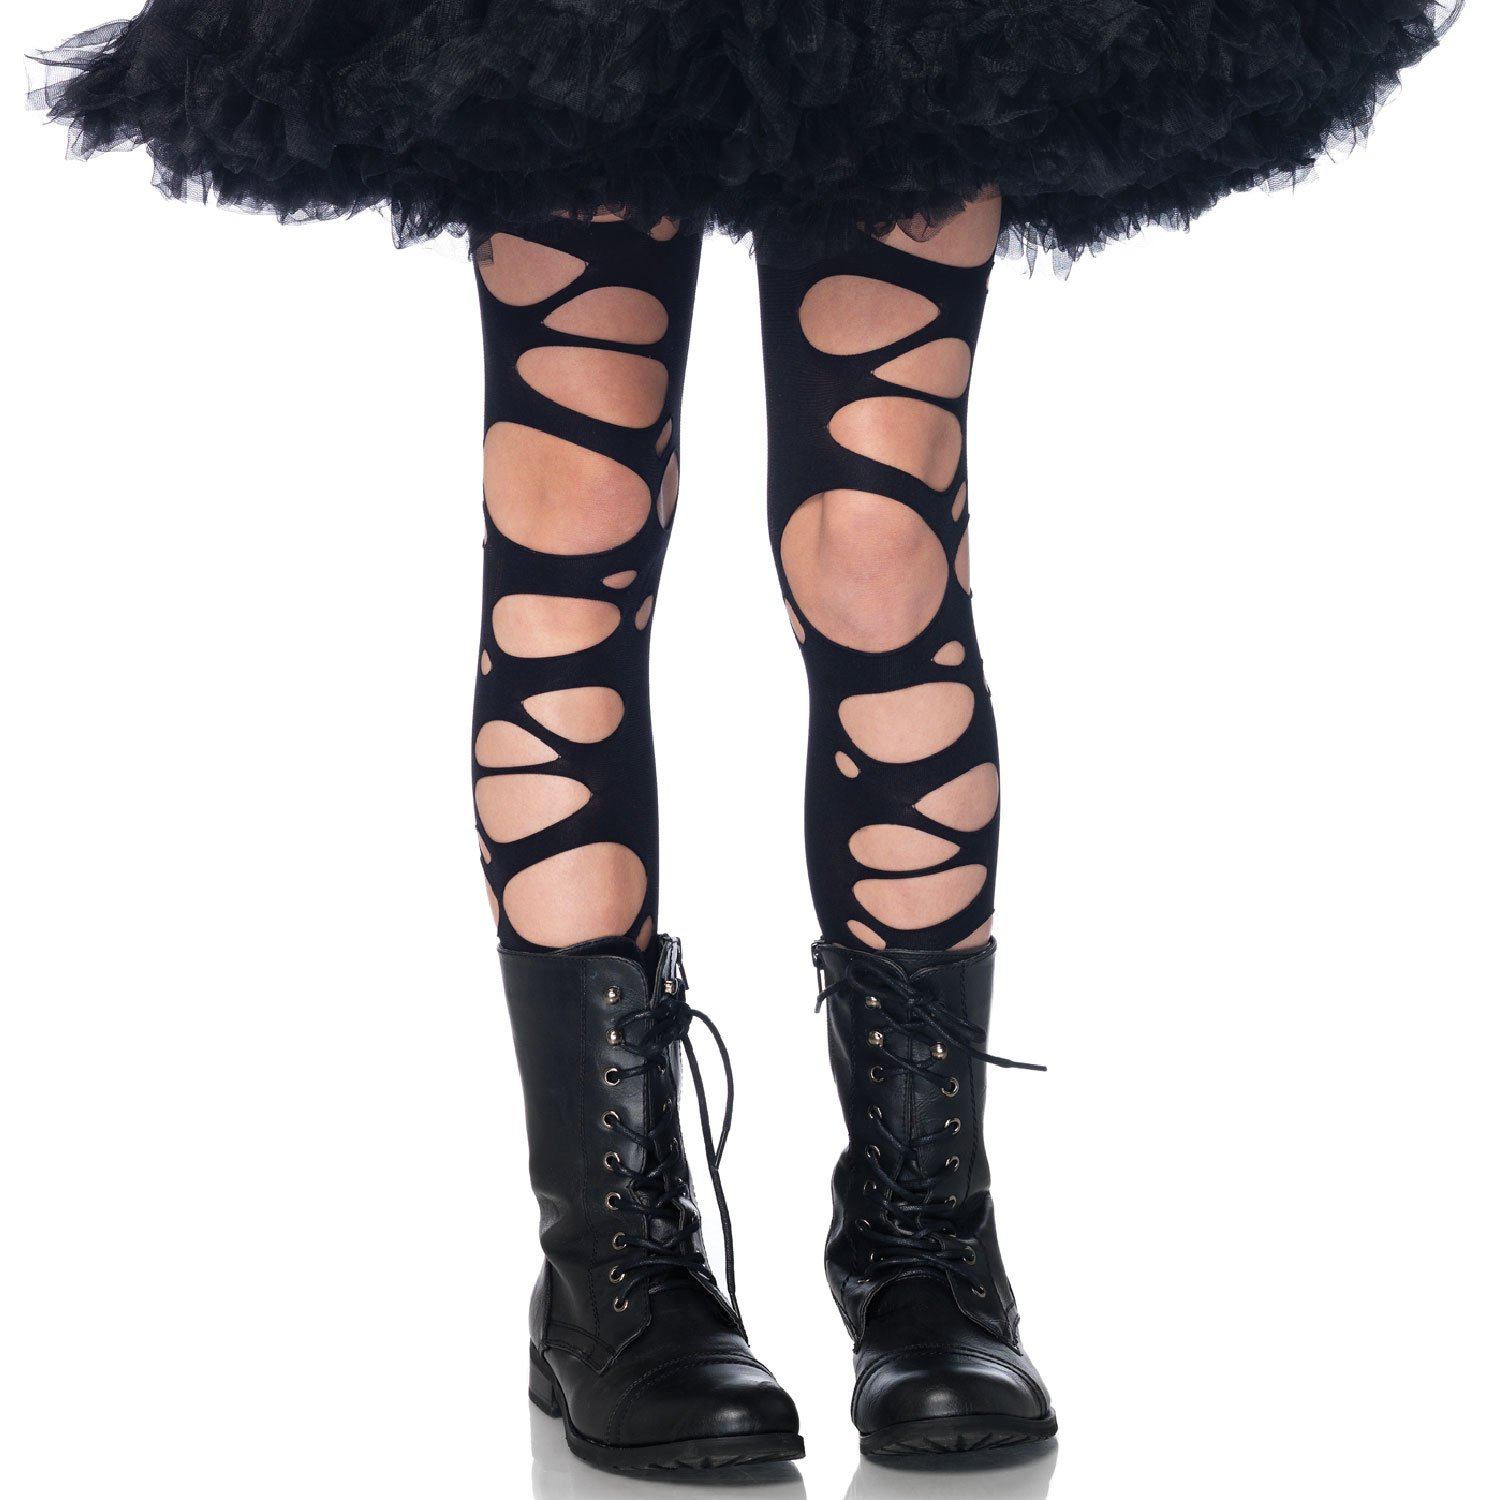 Tattered Child Tights Leg Avenue